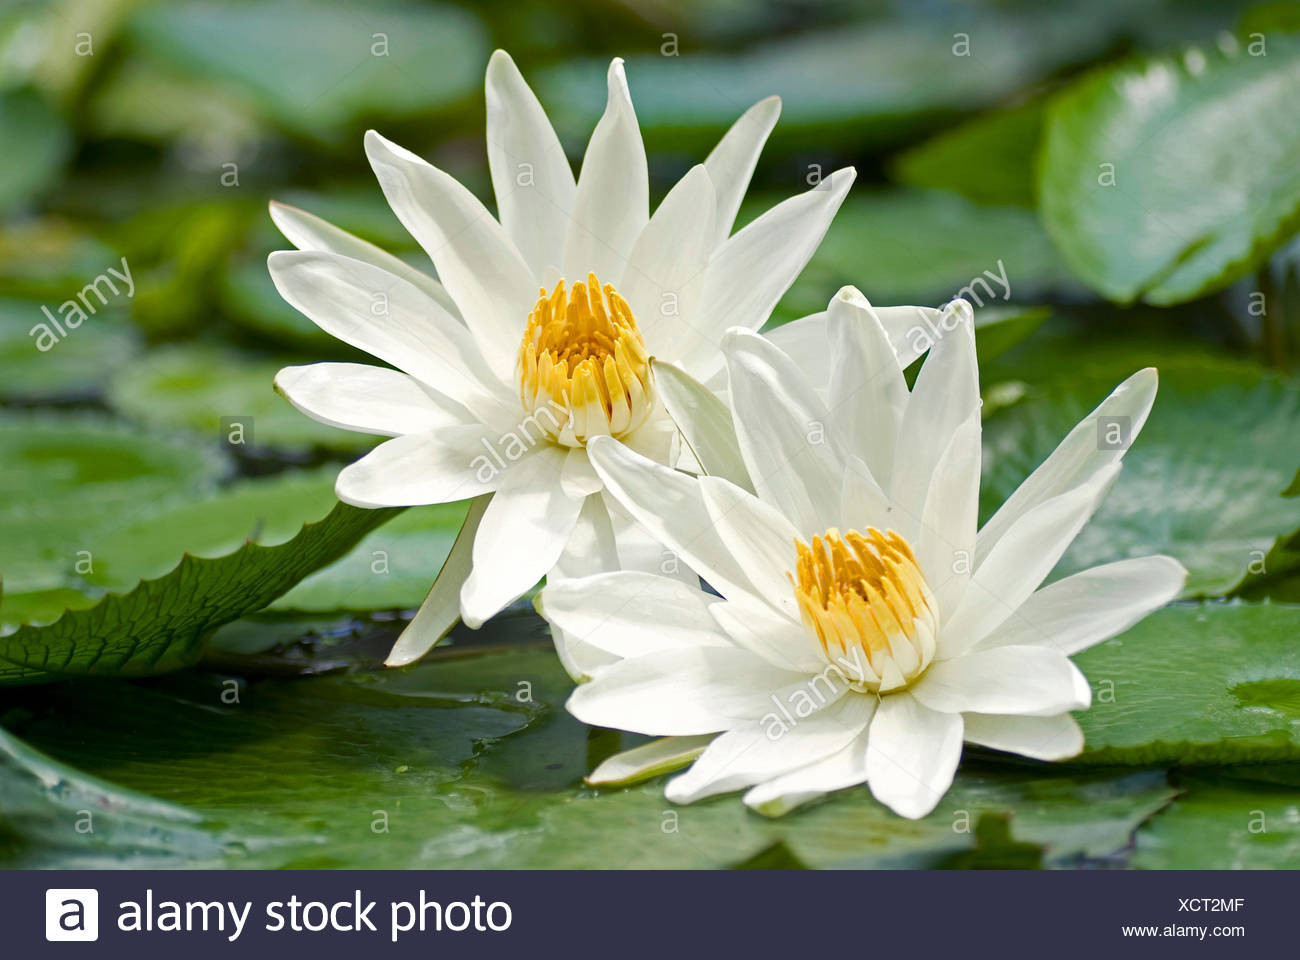 Egyptian Water Lily White Egyptian Lotus Nymphaea Lotus Two